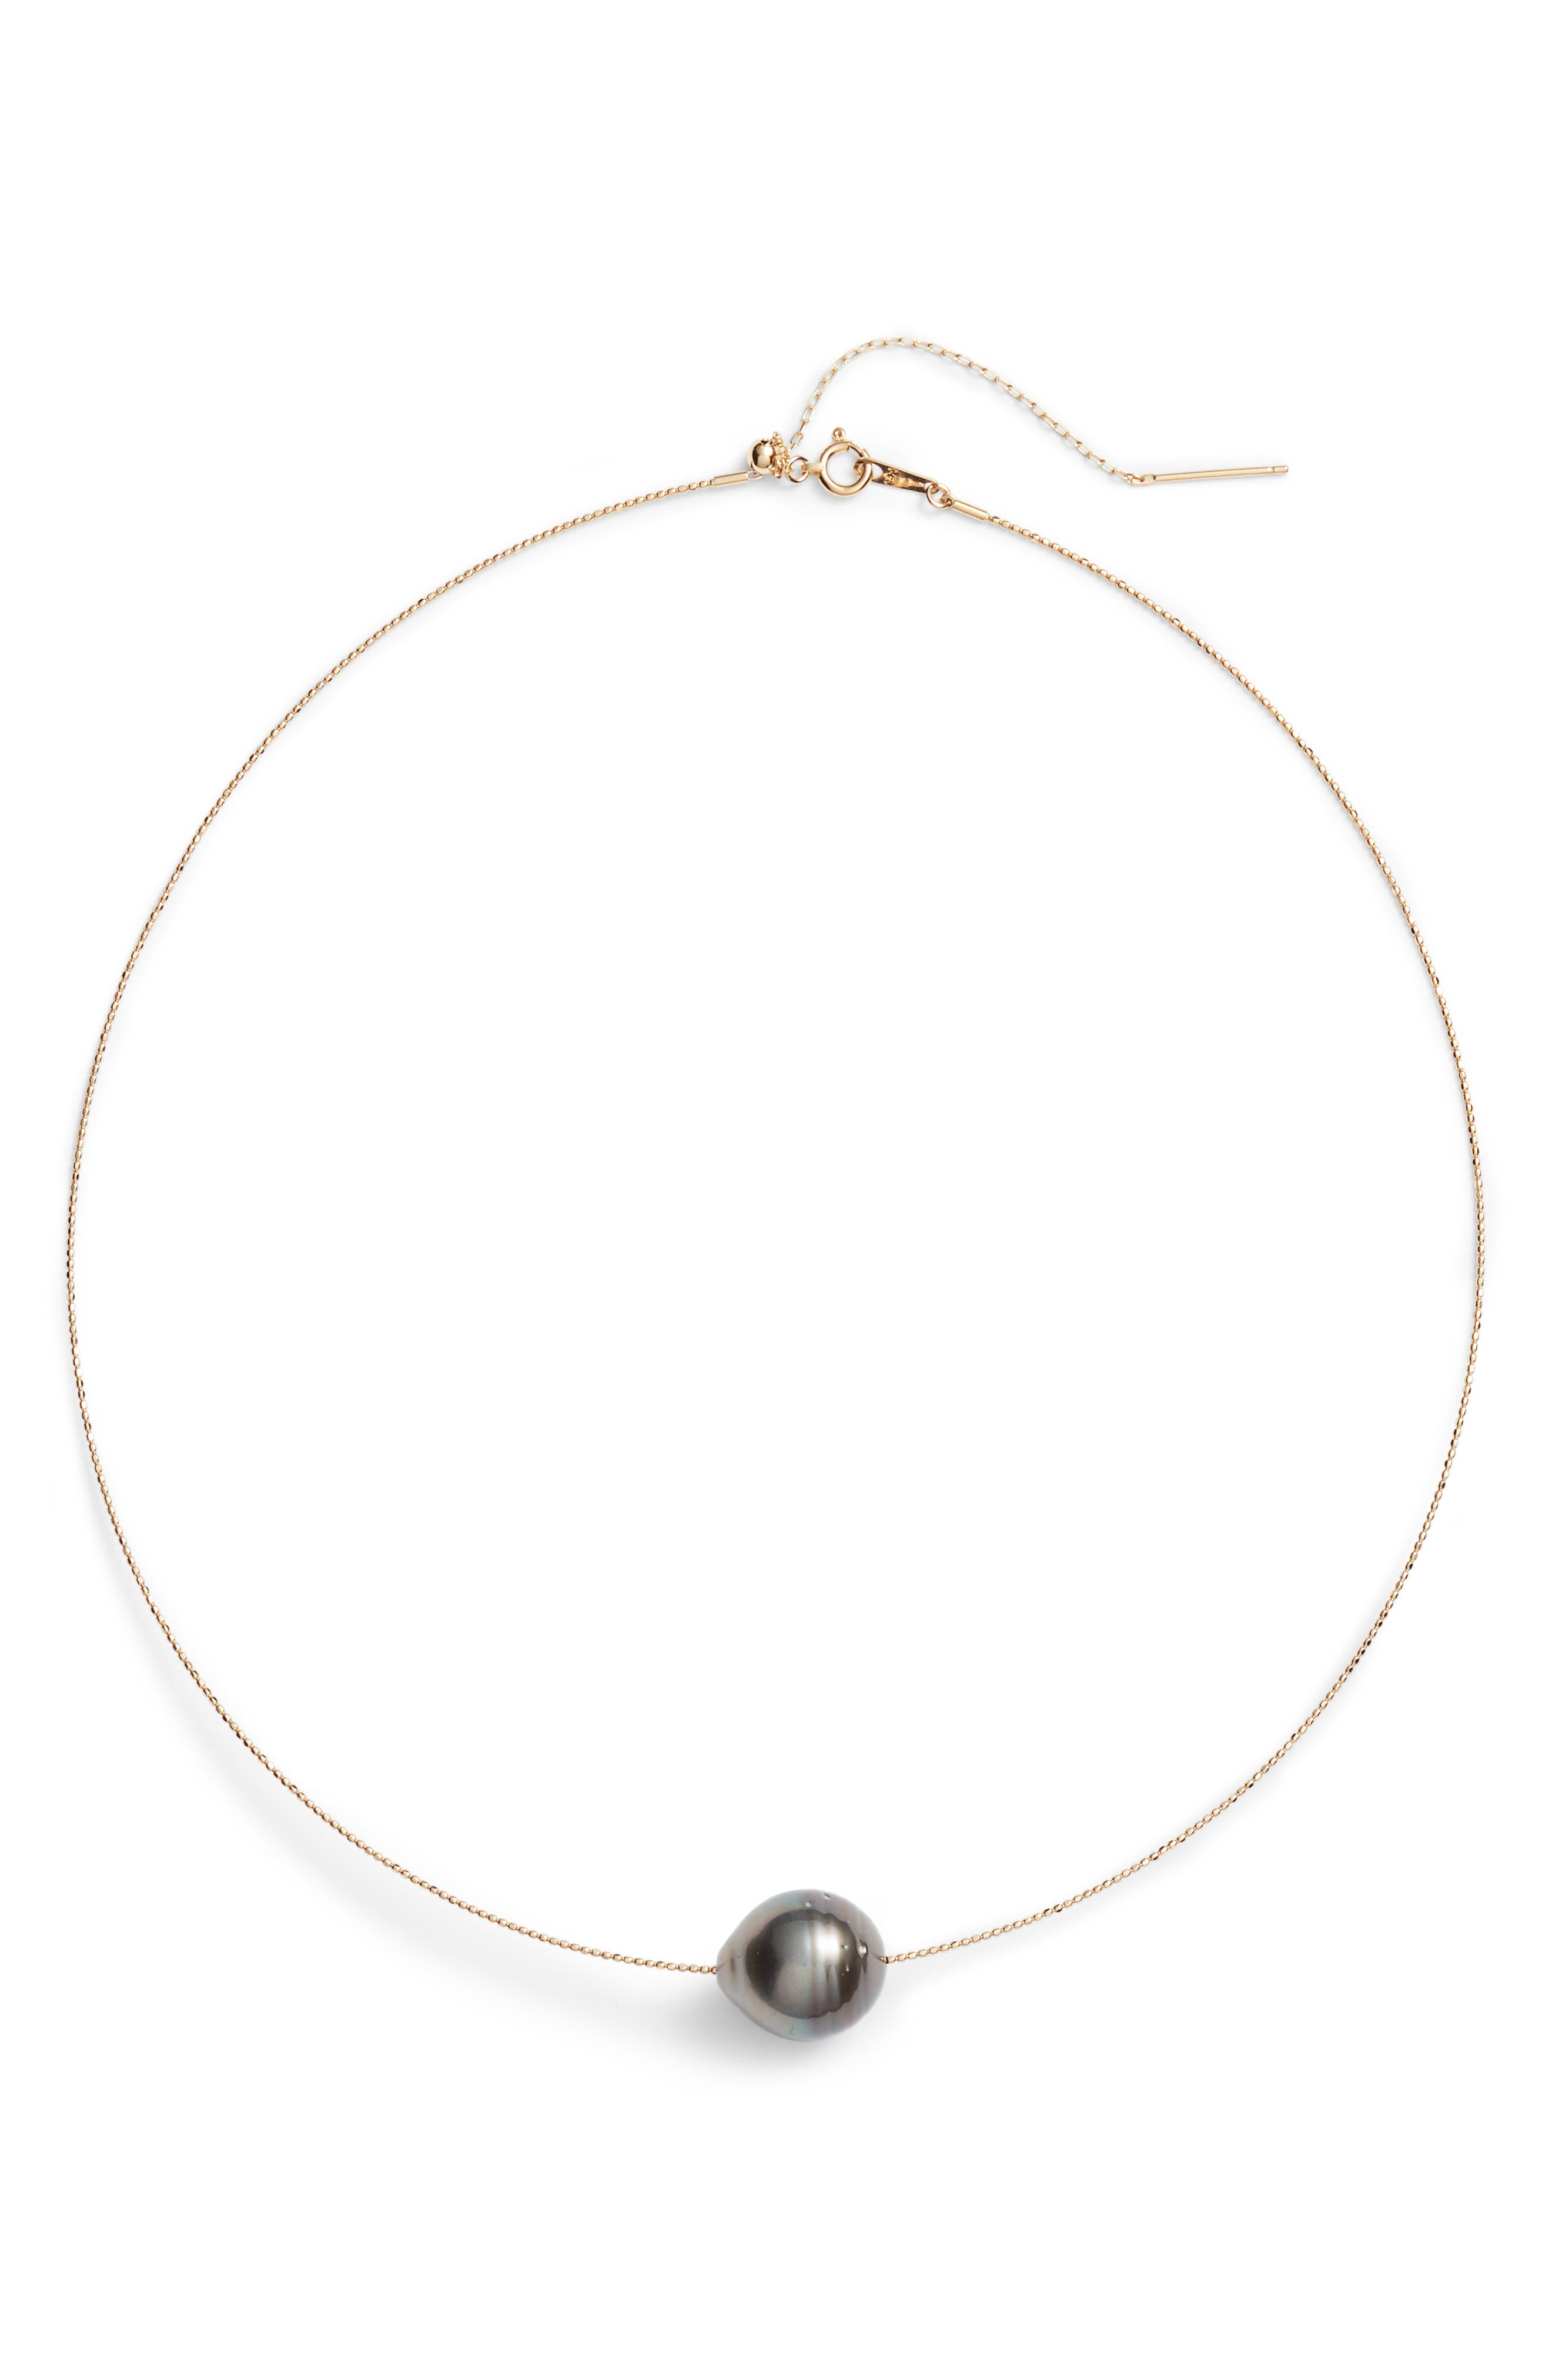 South Sea Collar Necklace with Genuine Pearl,                         Main,                         color, Yellow Gold/ Black Pearl